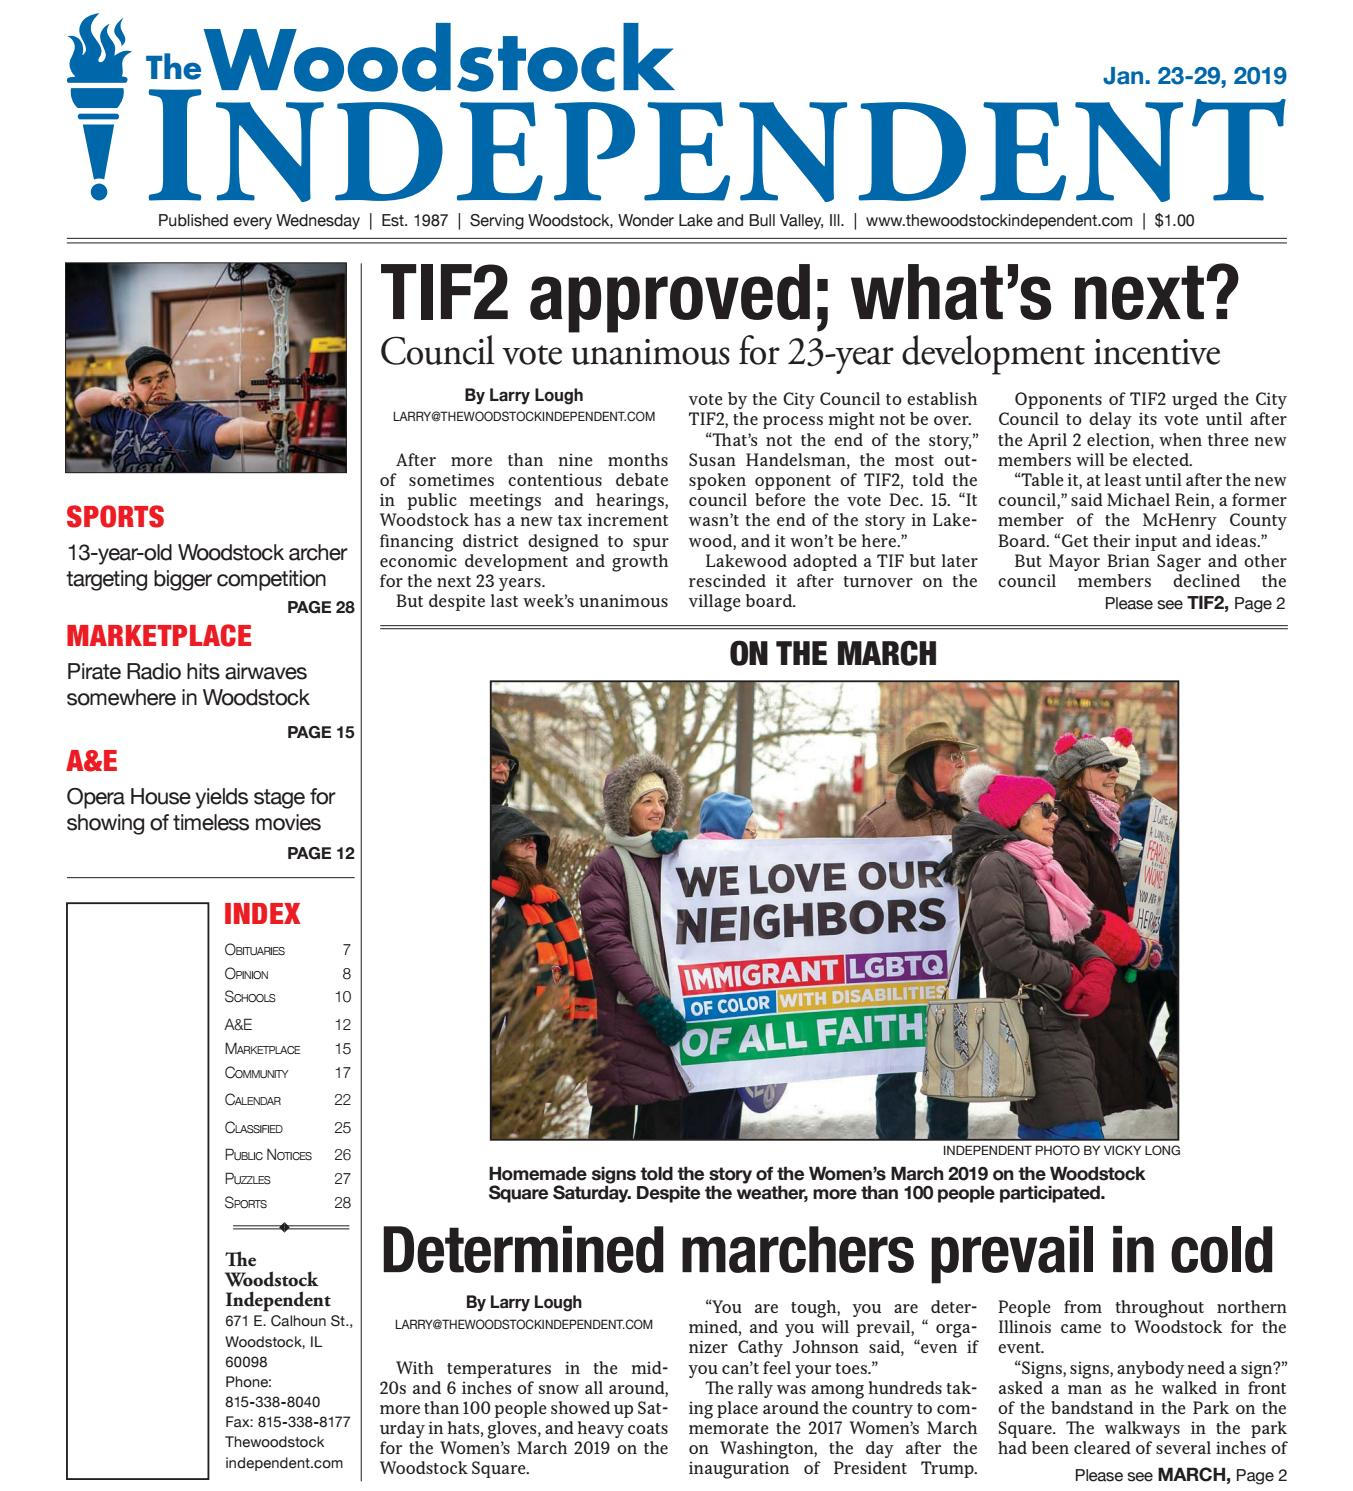 Woodstock Independent 1/23/19 by Woodstock Independent - issuu